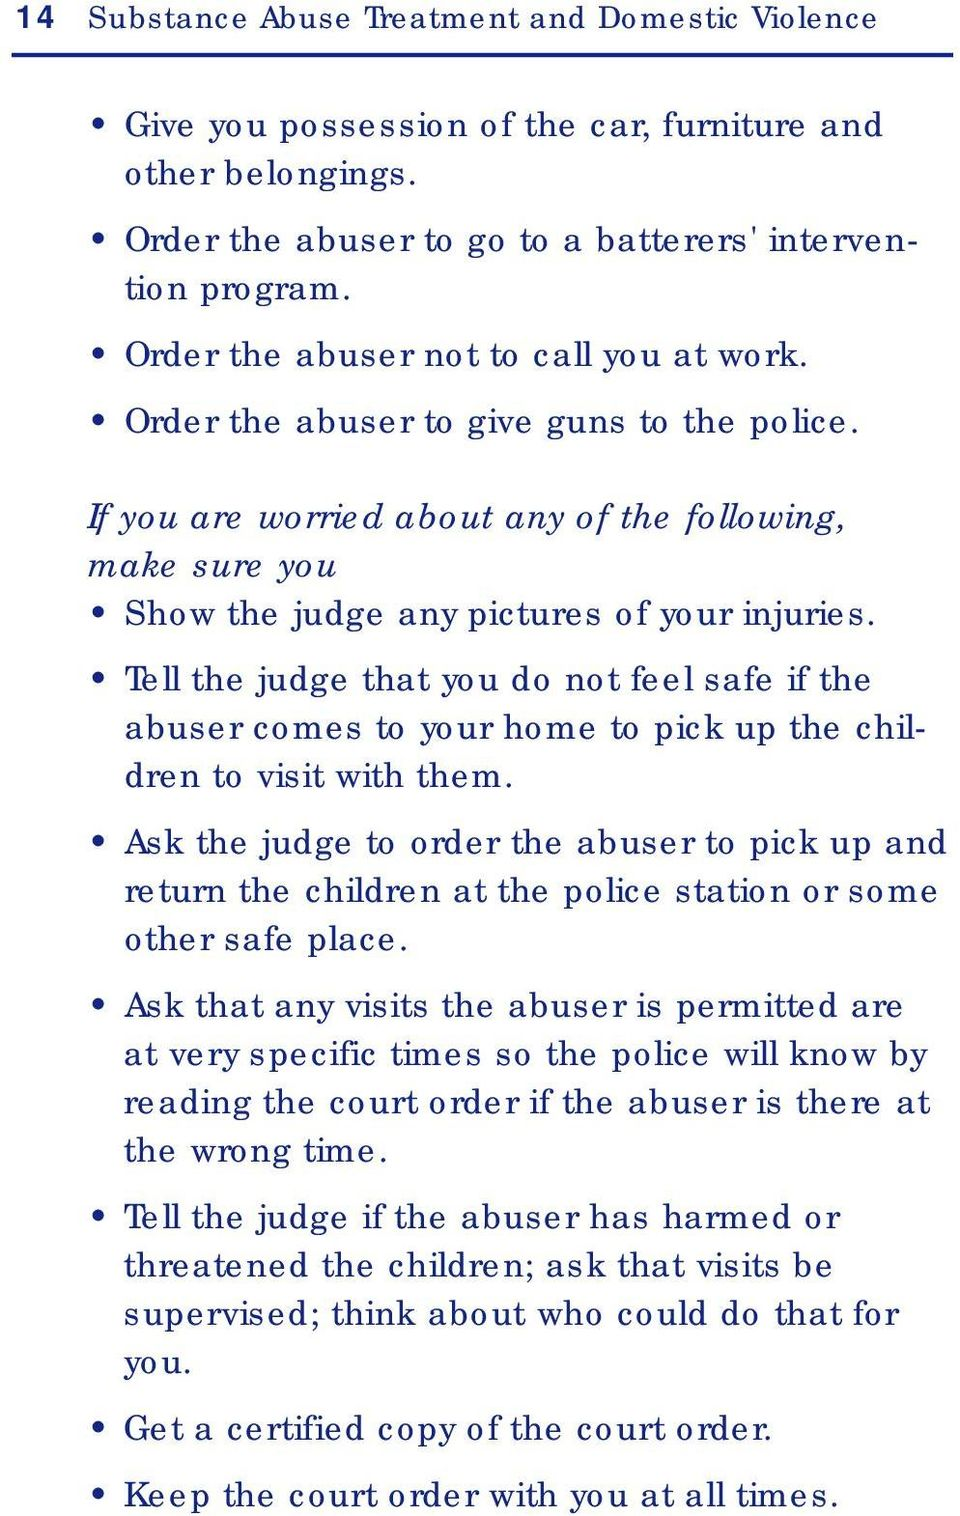 Tell the judge that you do not feel safe if the abuser comes to your home to pick up the children to visit with them.